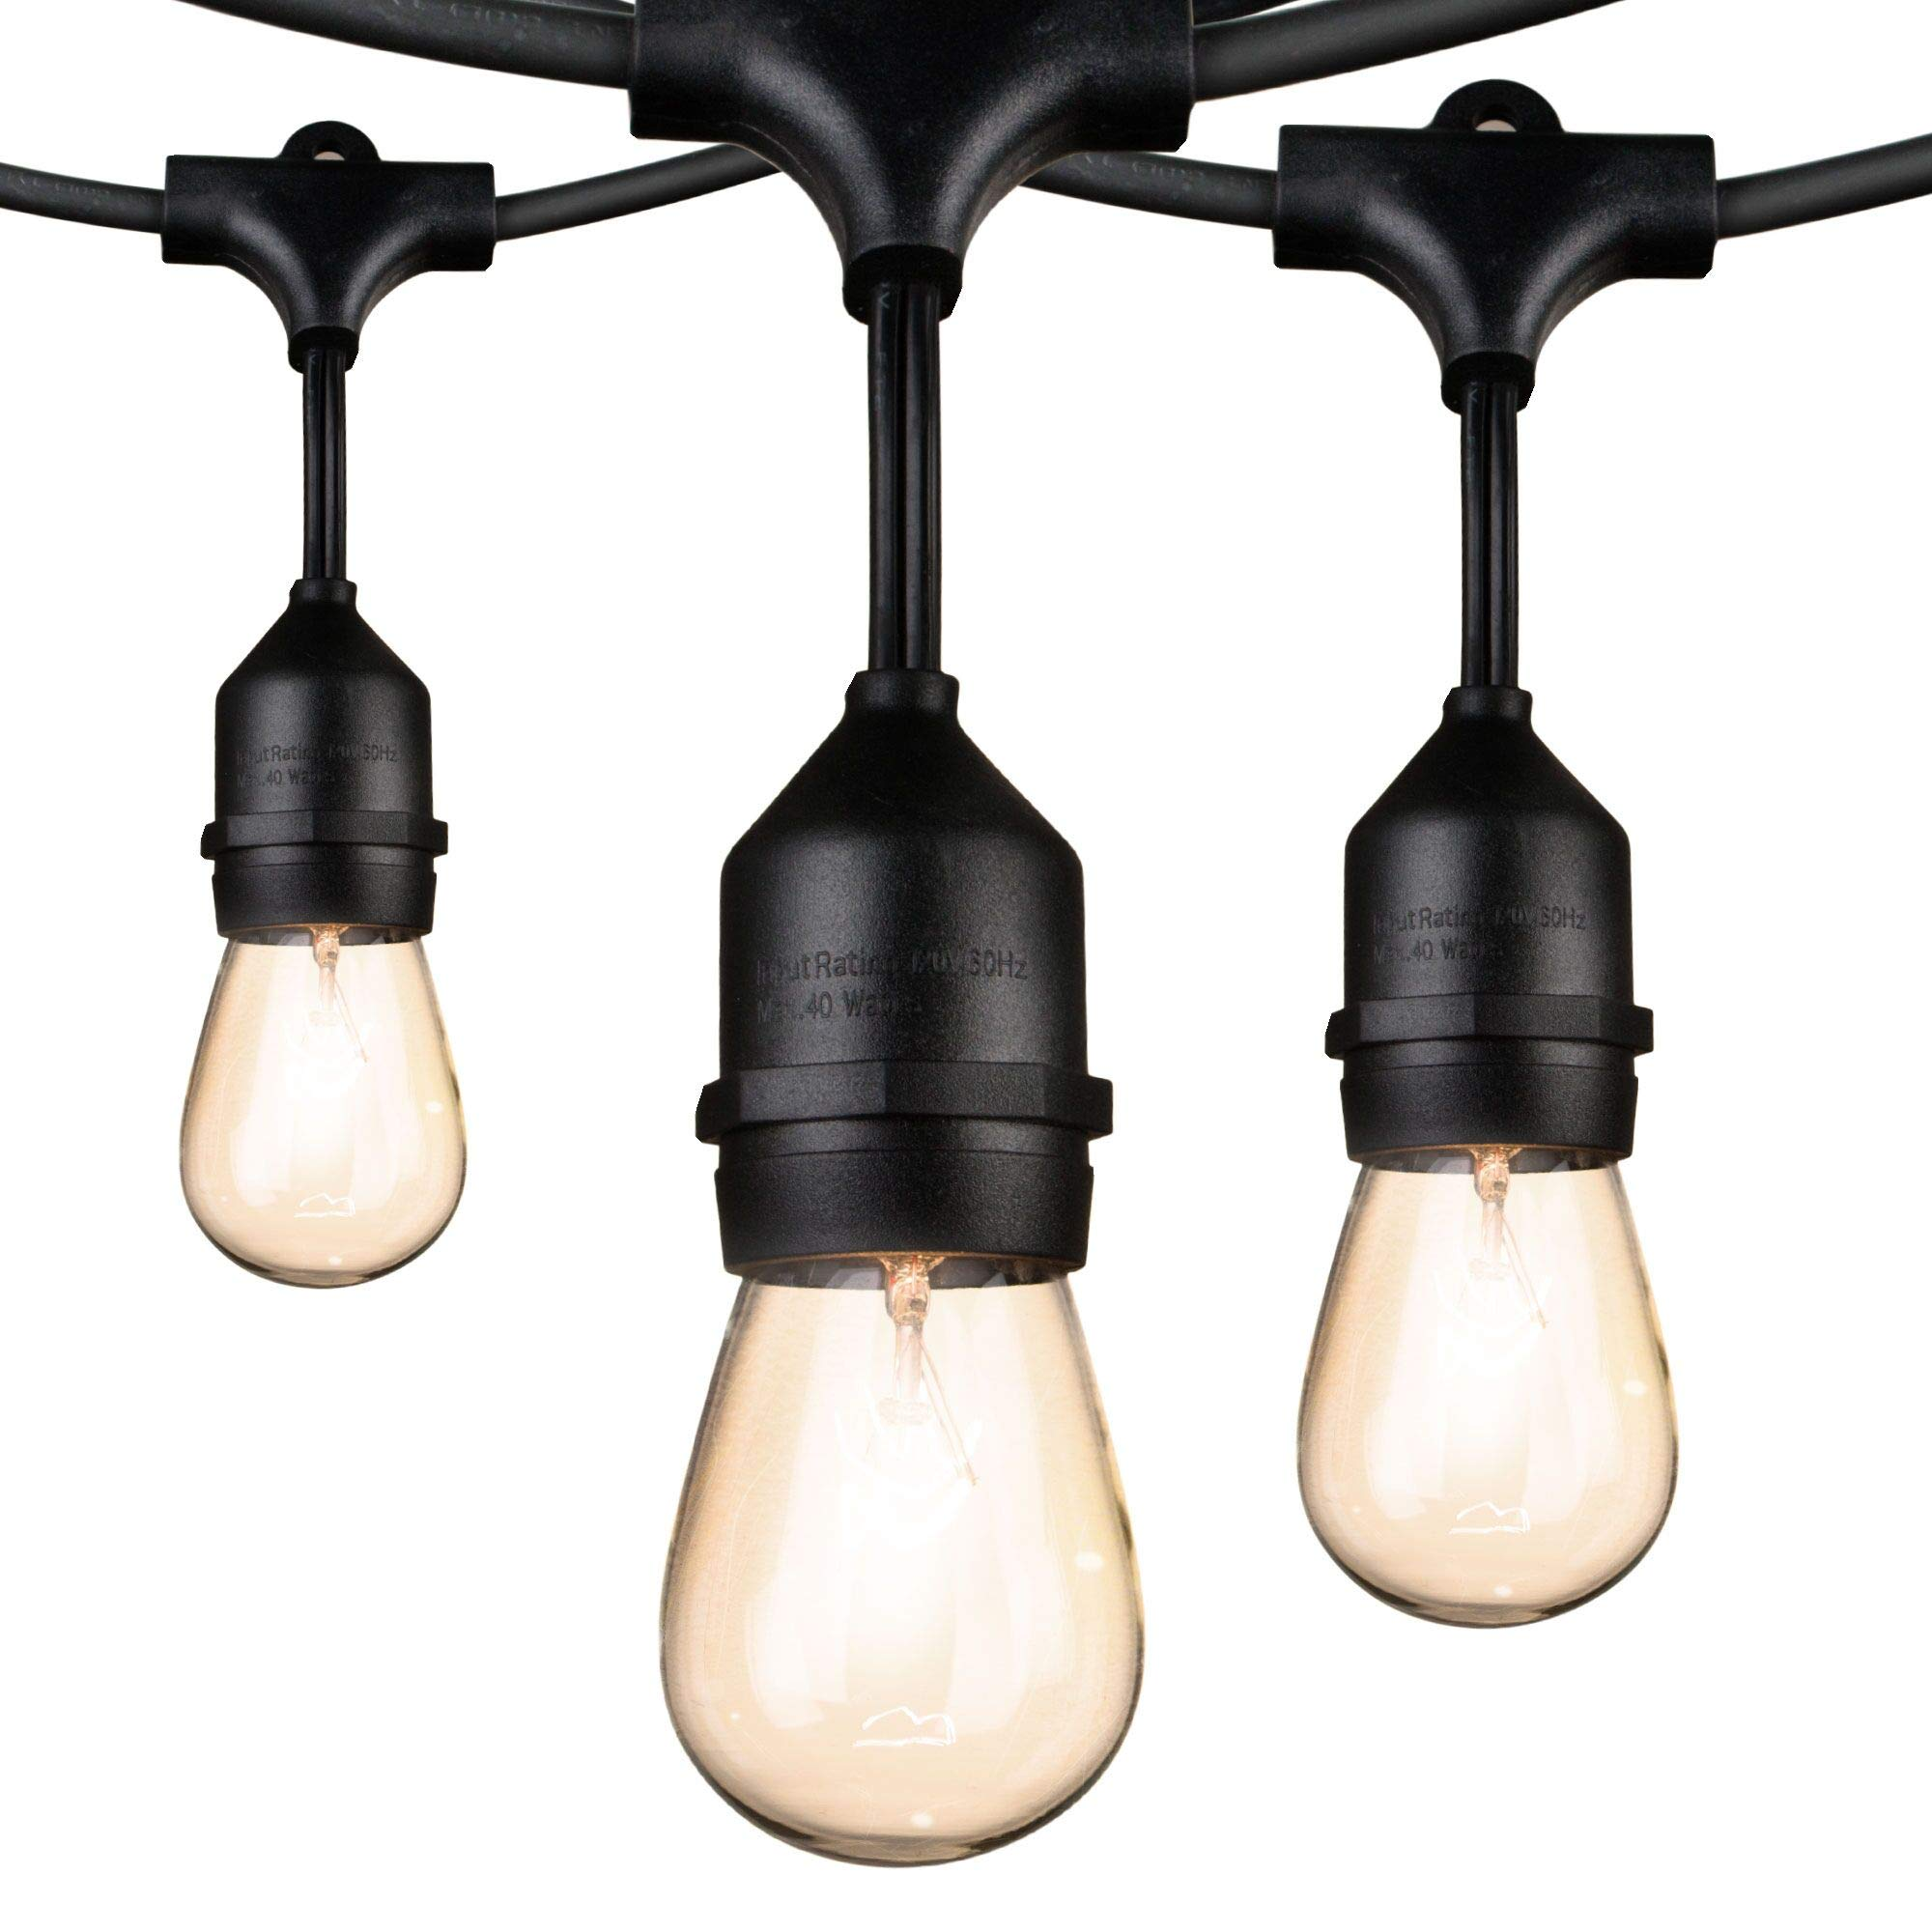 Outdoor String Lights 48Ft Edison Vintage Commercial Grade Lights with 15xE26 Base Sockets & S14 Bulbs, Weatherproof Connectable Strand for Porch Garden Deck Backyard Cafe Bar Wedding Party, Black by Minetom